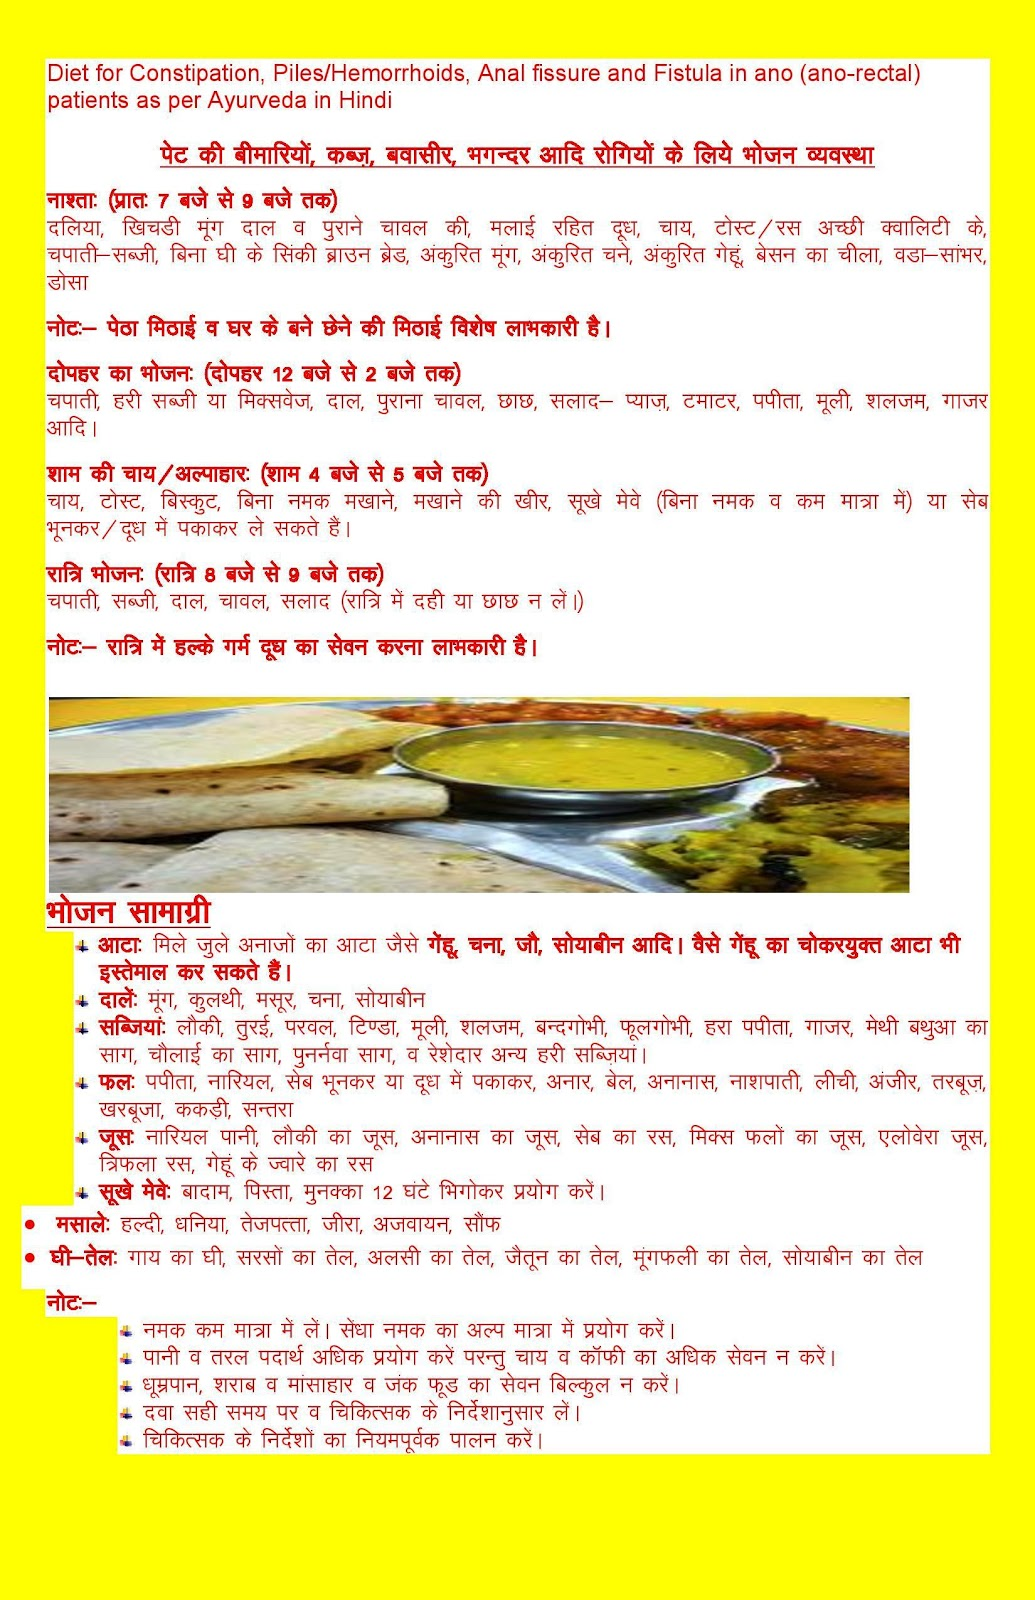 Diet for Constipation, Piles/Hemorrhoids, Anal fissure and Fistula in ano (anorectal) patients in Hindi